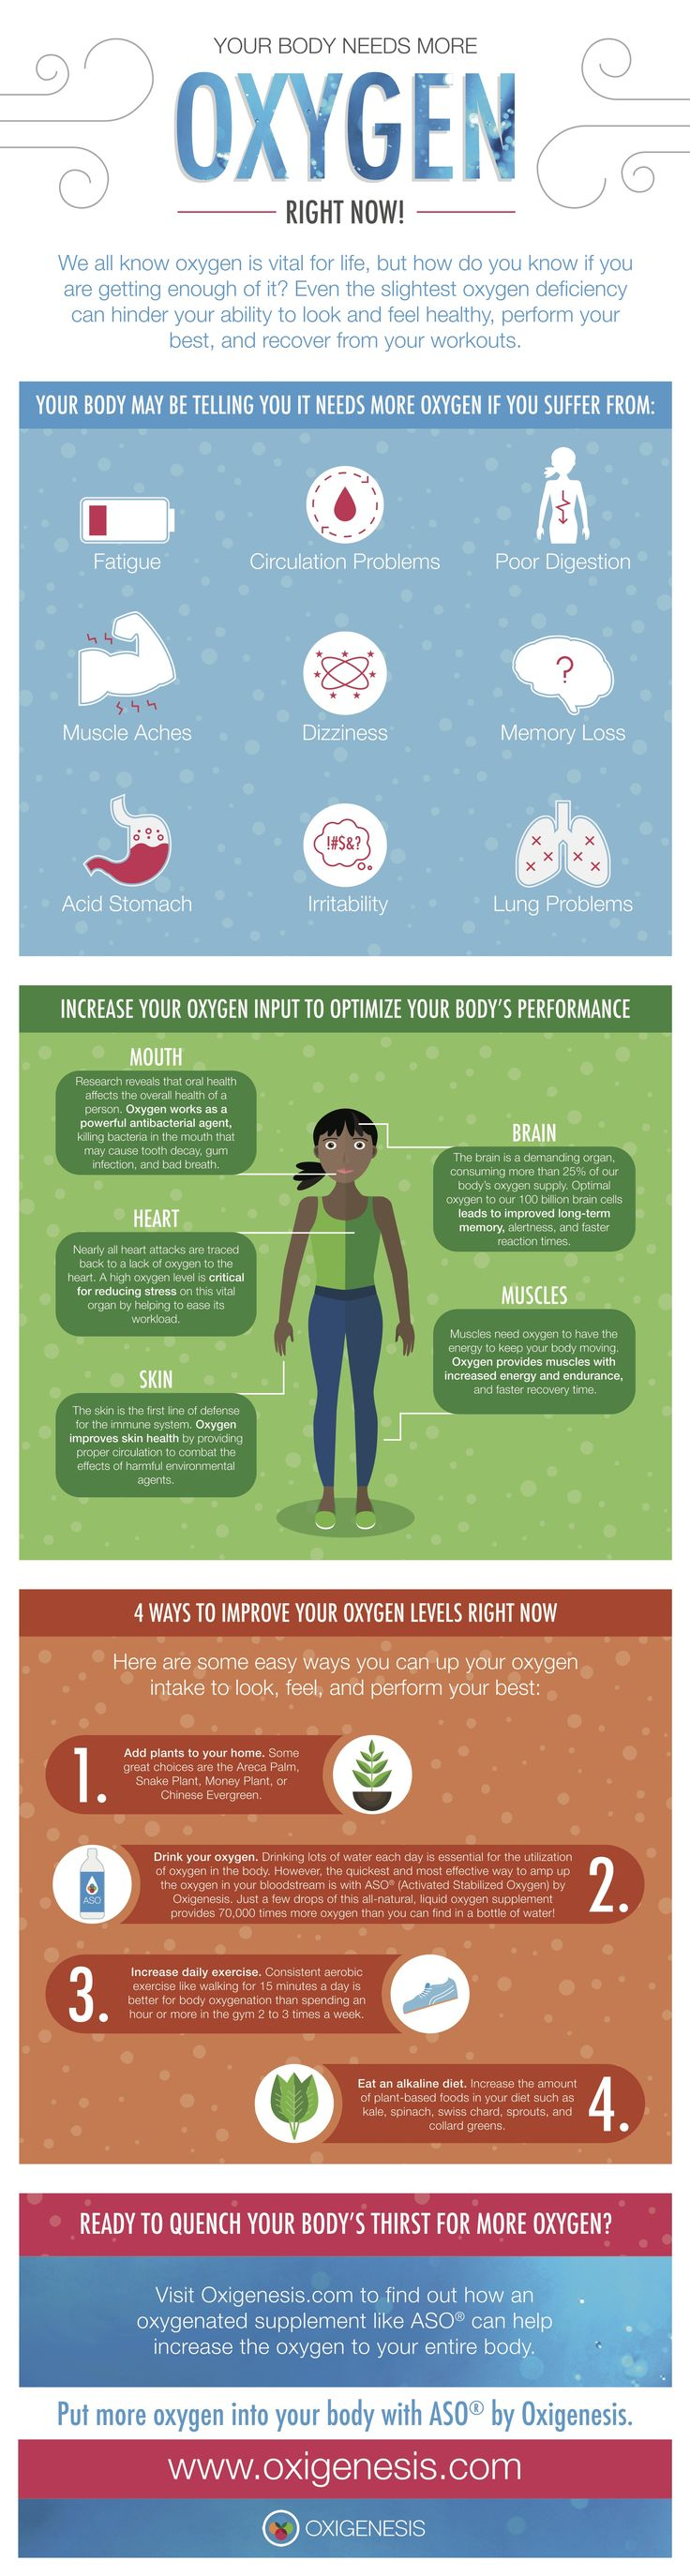 From fatigue to muscle aches, your body knows when it's lacking oxygen. By…